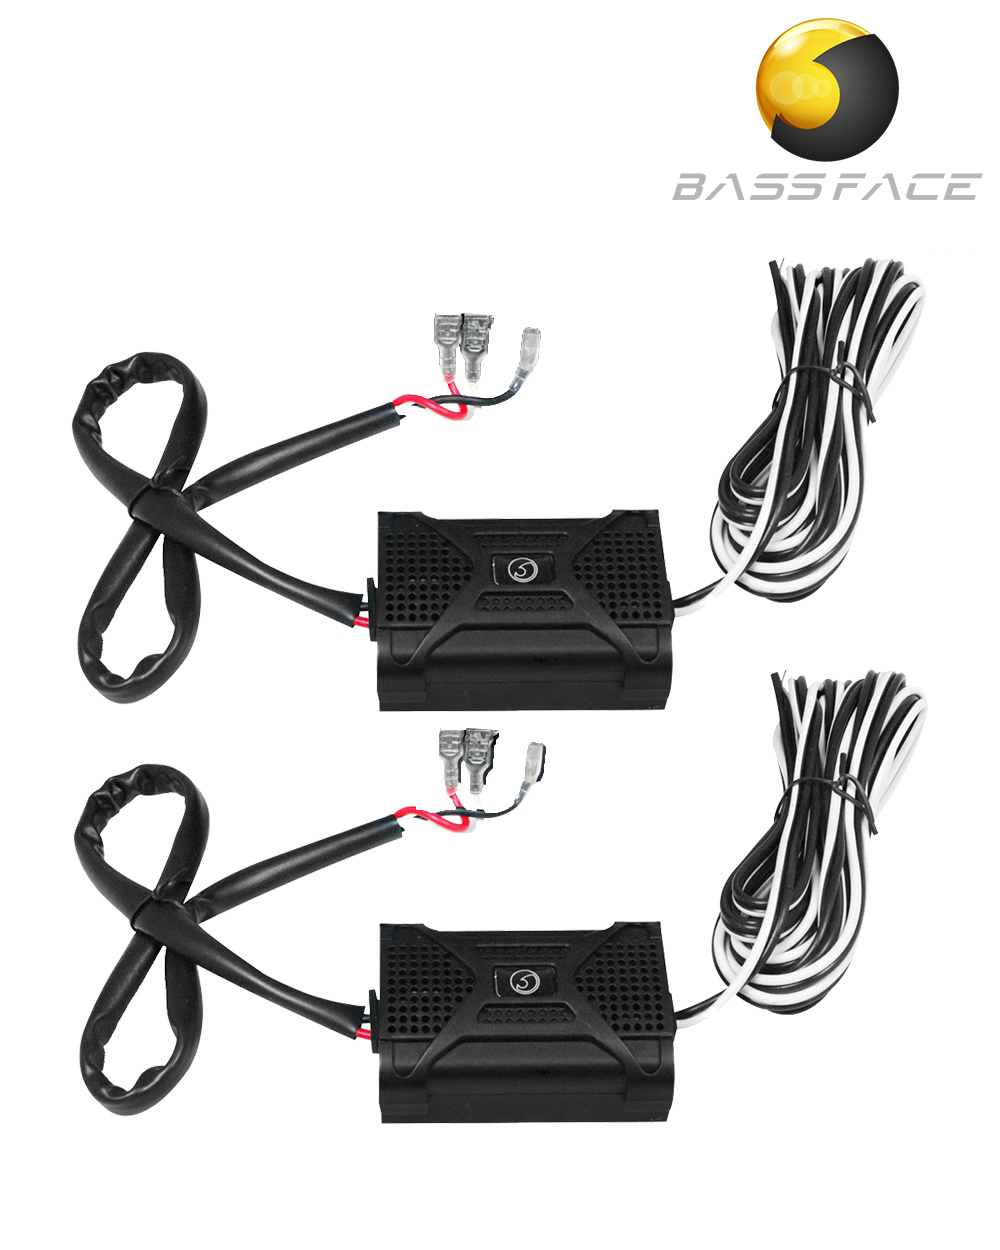 Bassface Car Audio The Specialists 1channel Dvc Wiring Diagram Blackspl1xover Passive 2 Way Crossovers For 5 6 Inch 13cm 17cm Coaxial